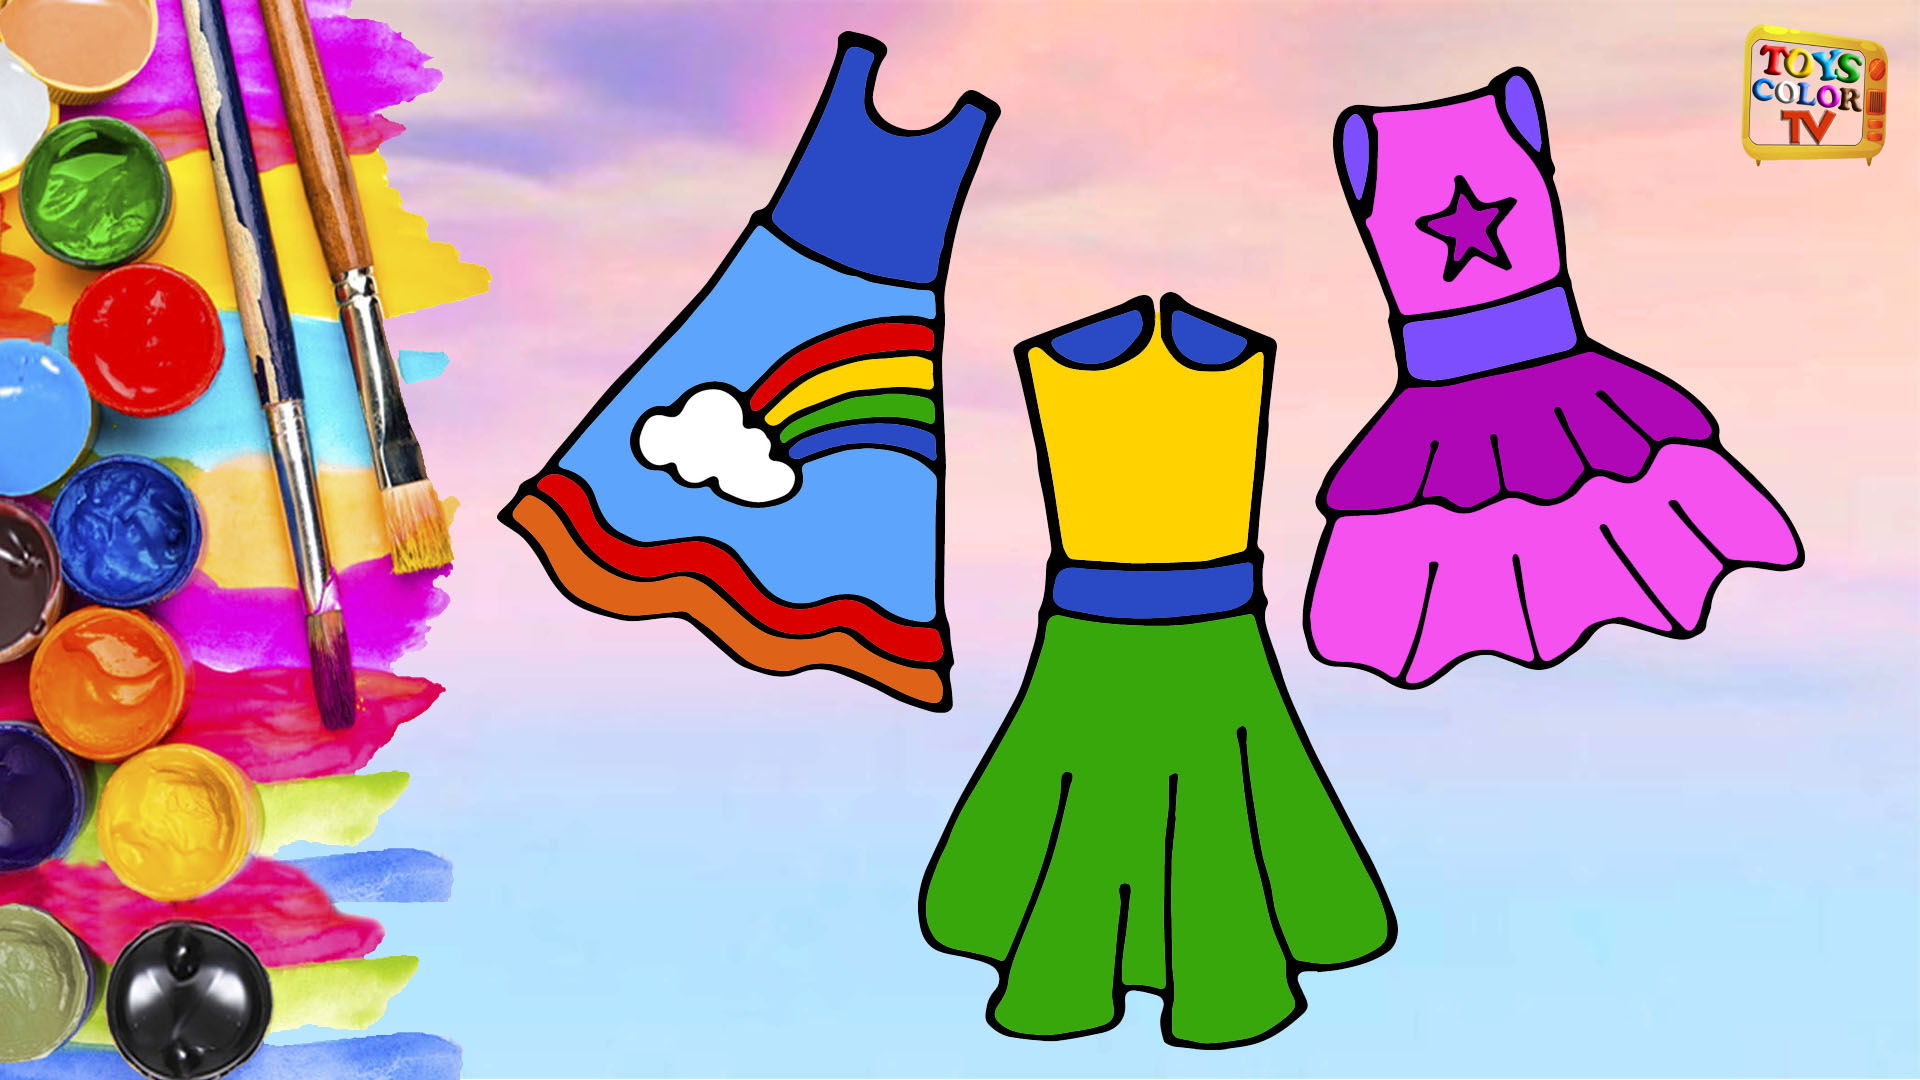 How to Draw Dresses for Girls, Coloring Pages Dress, Art Colors for Kids, Toys Color TV